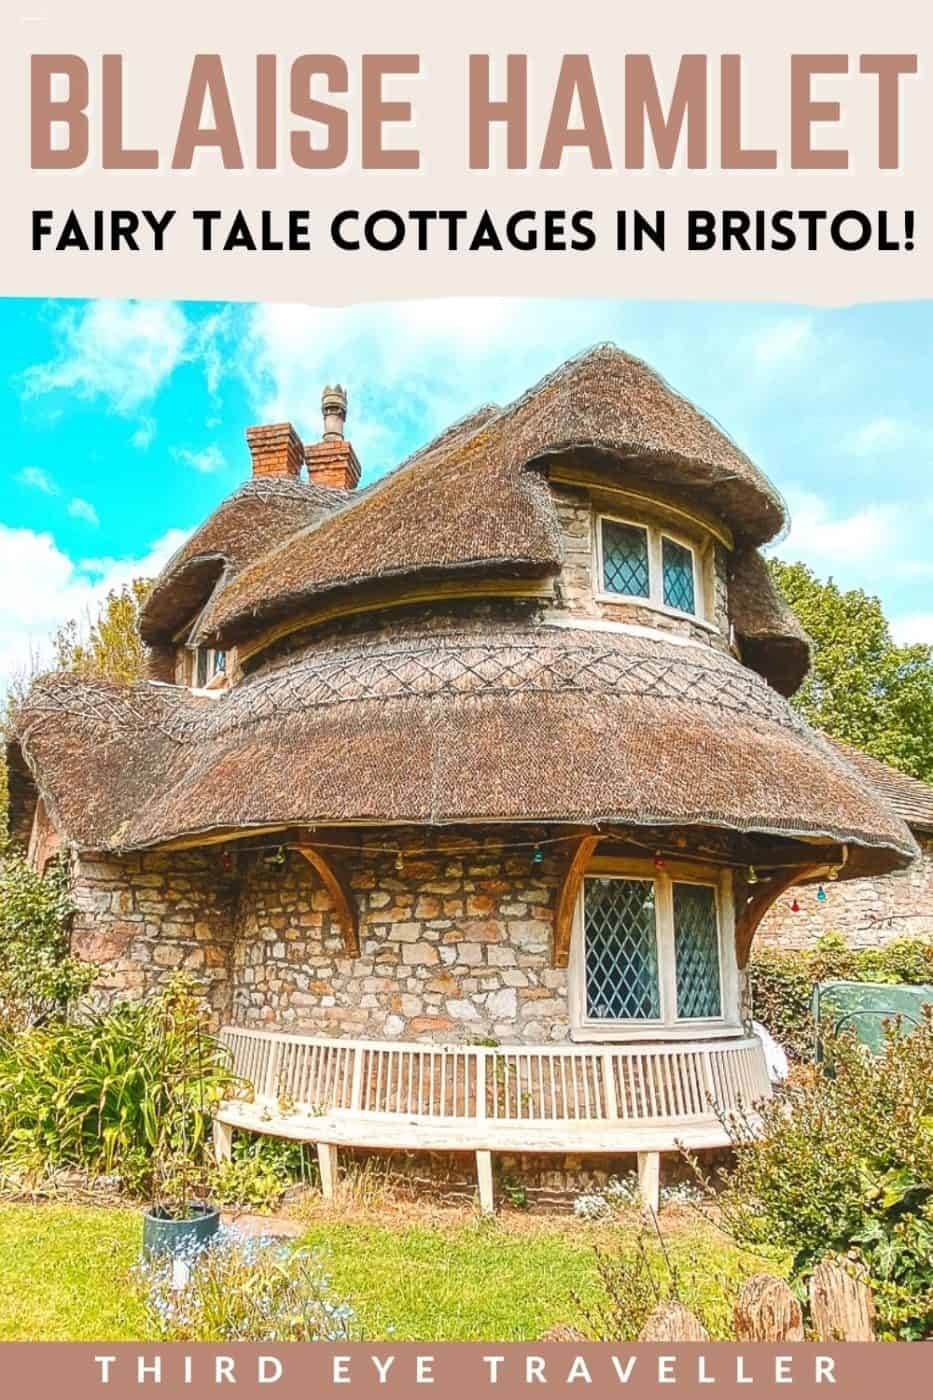 How to visit Blaise Hamlet in Bristol